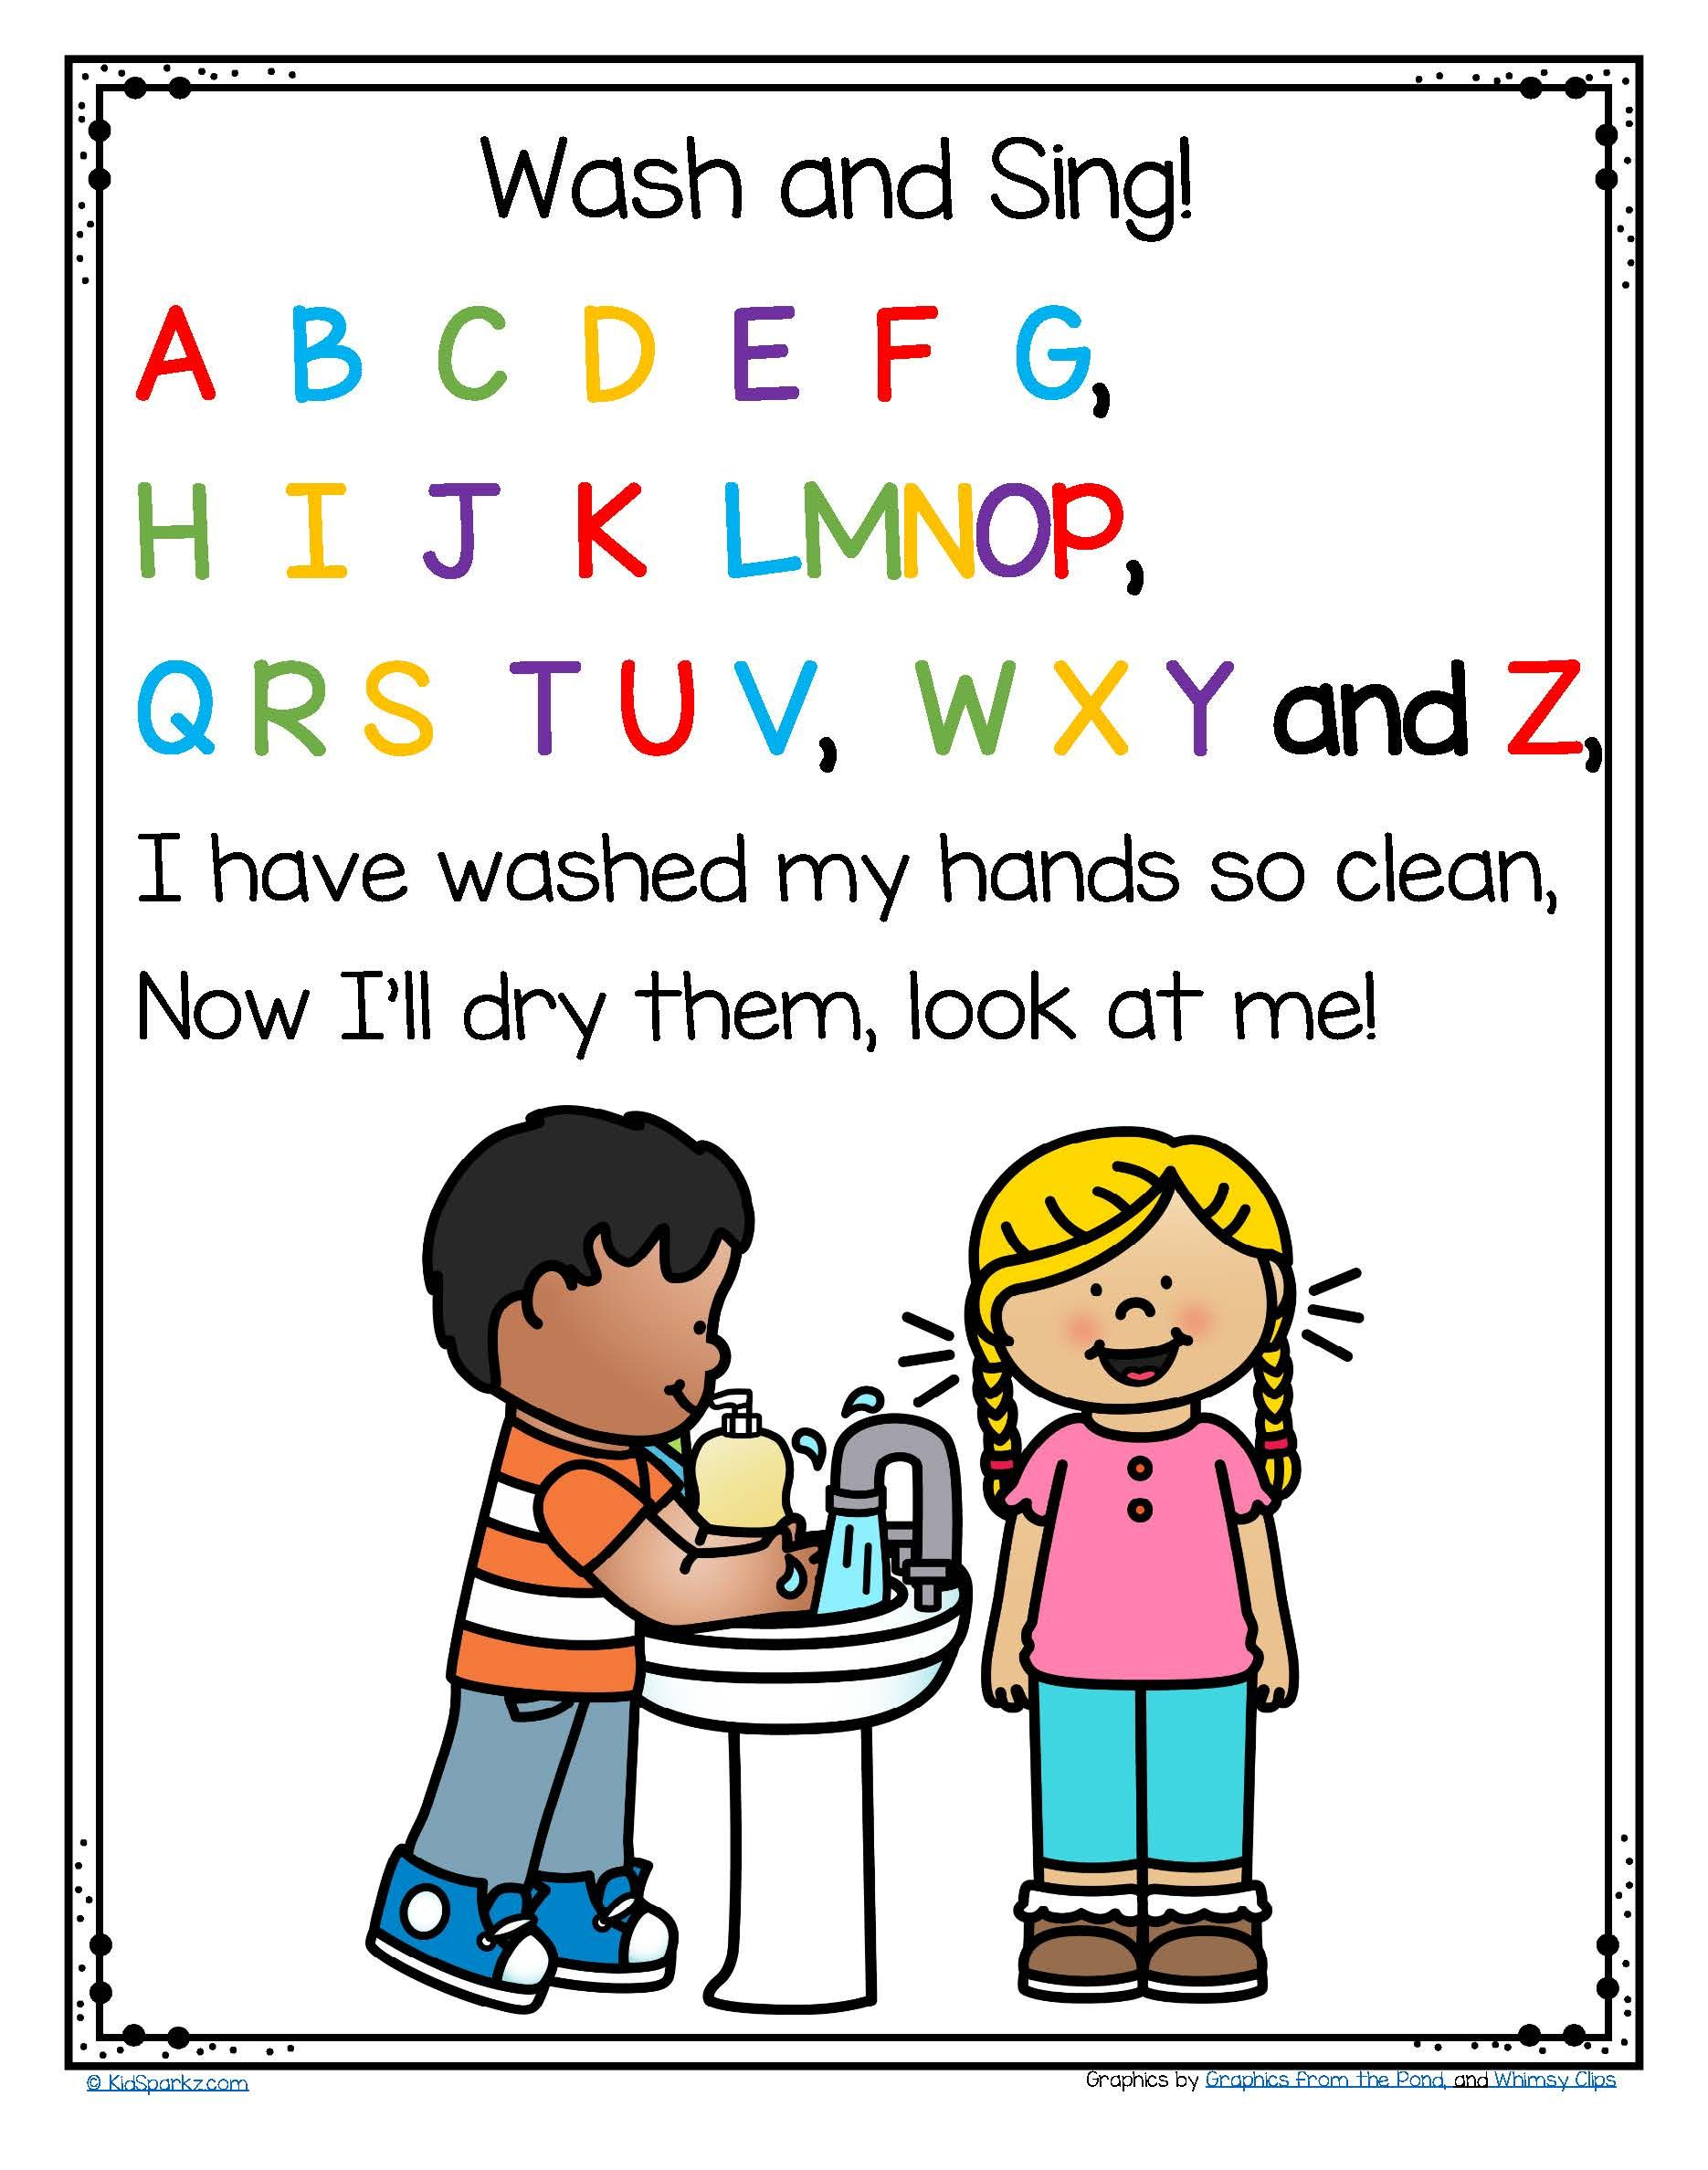 Free Wash Your Hands And Sing The Abc Song Poster In Color And B W Preschool Songs Classroom Songs Preschool Classroom [ 2376 x 1870 Pixel ]